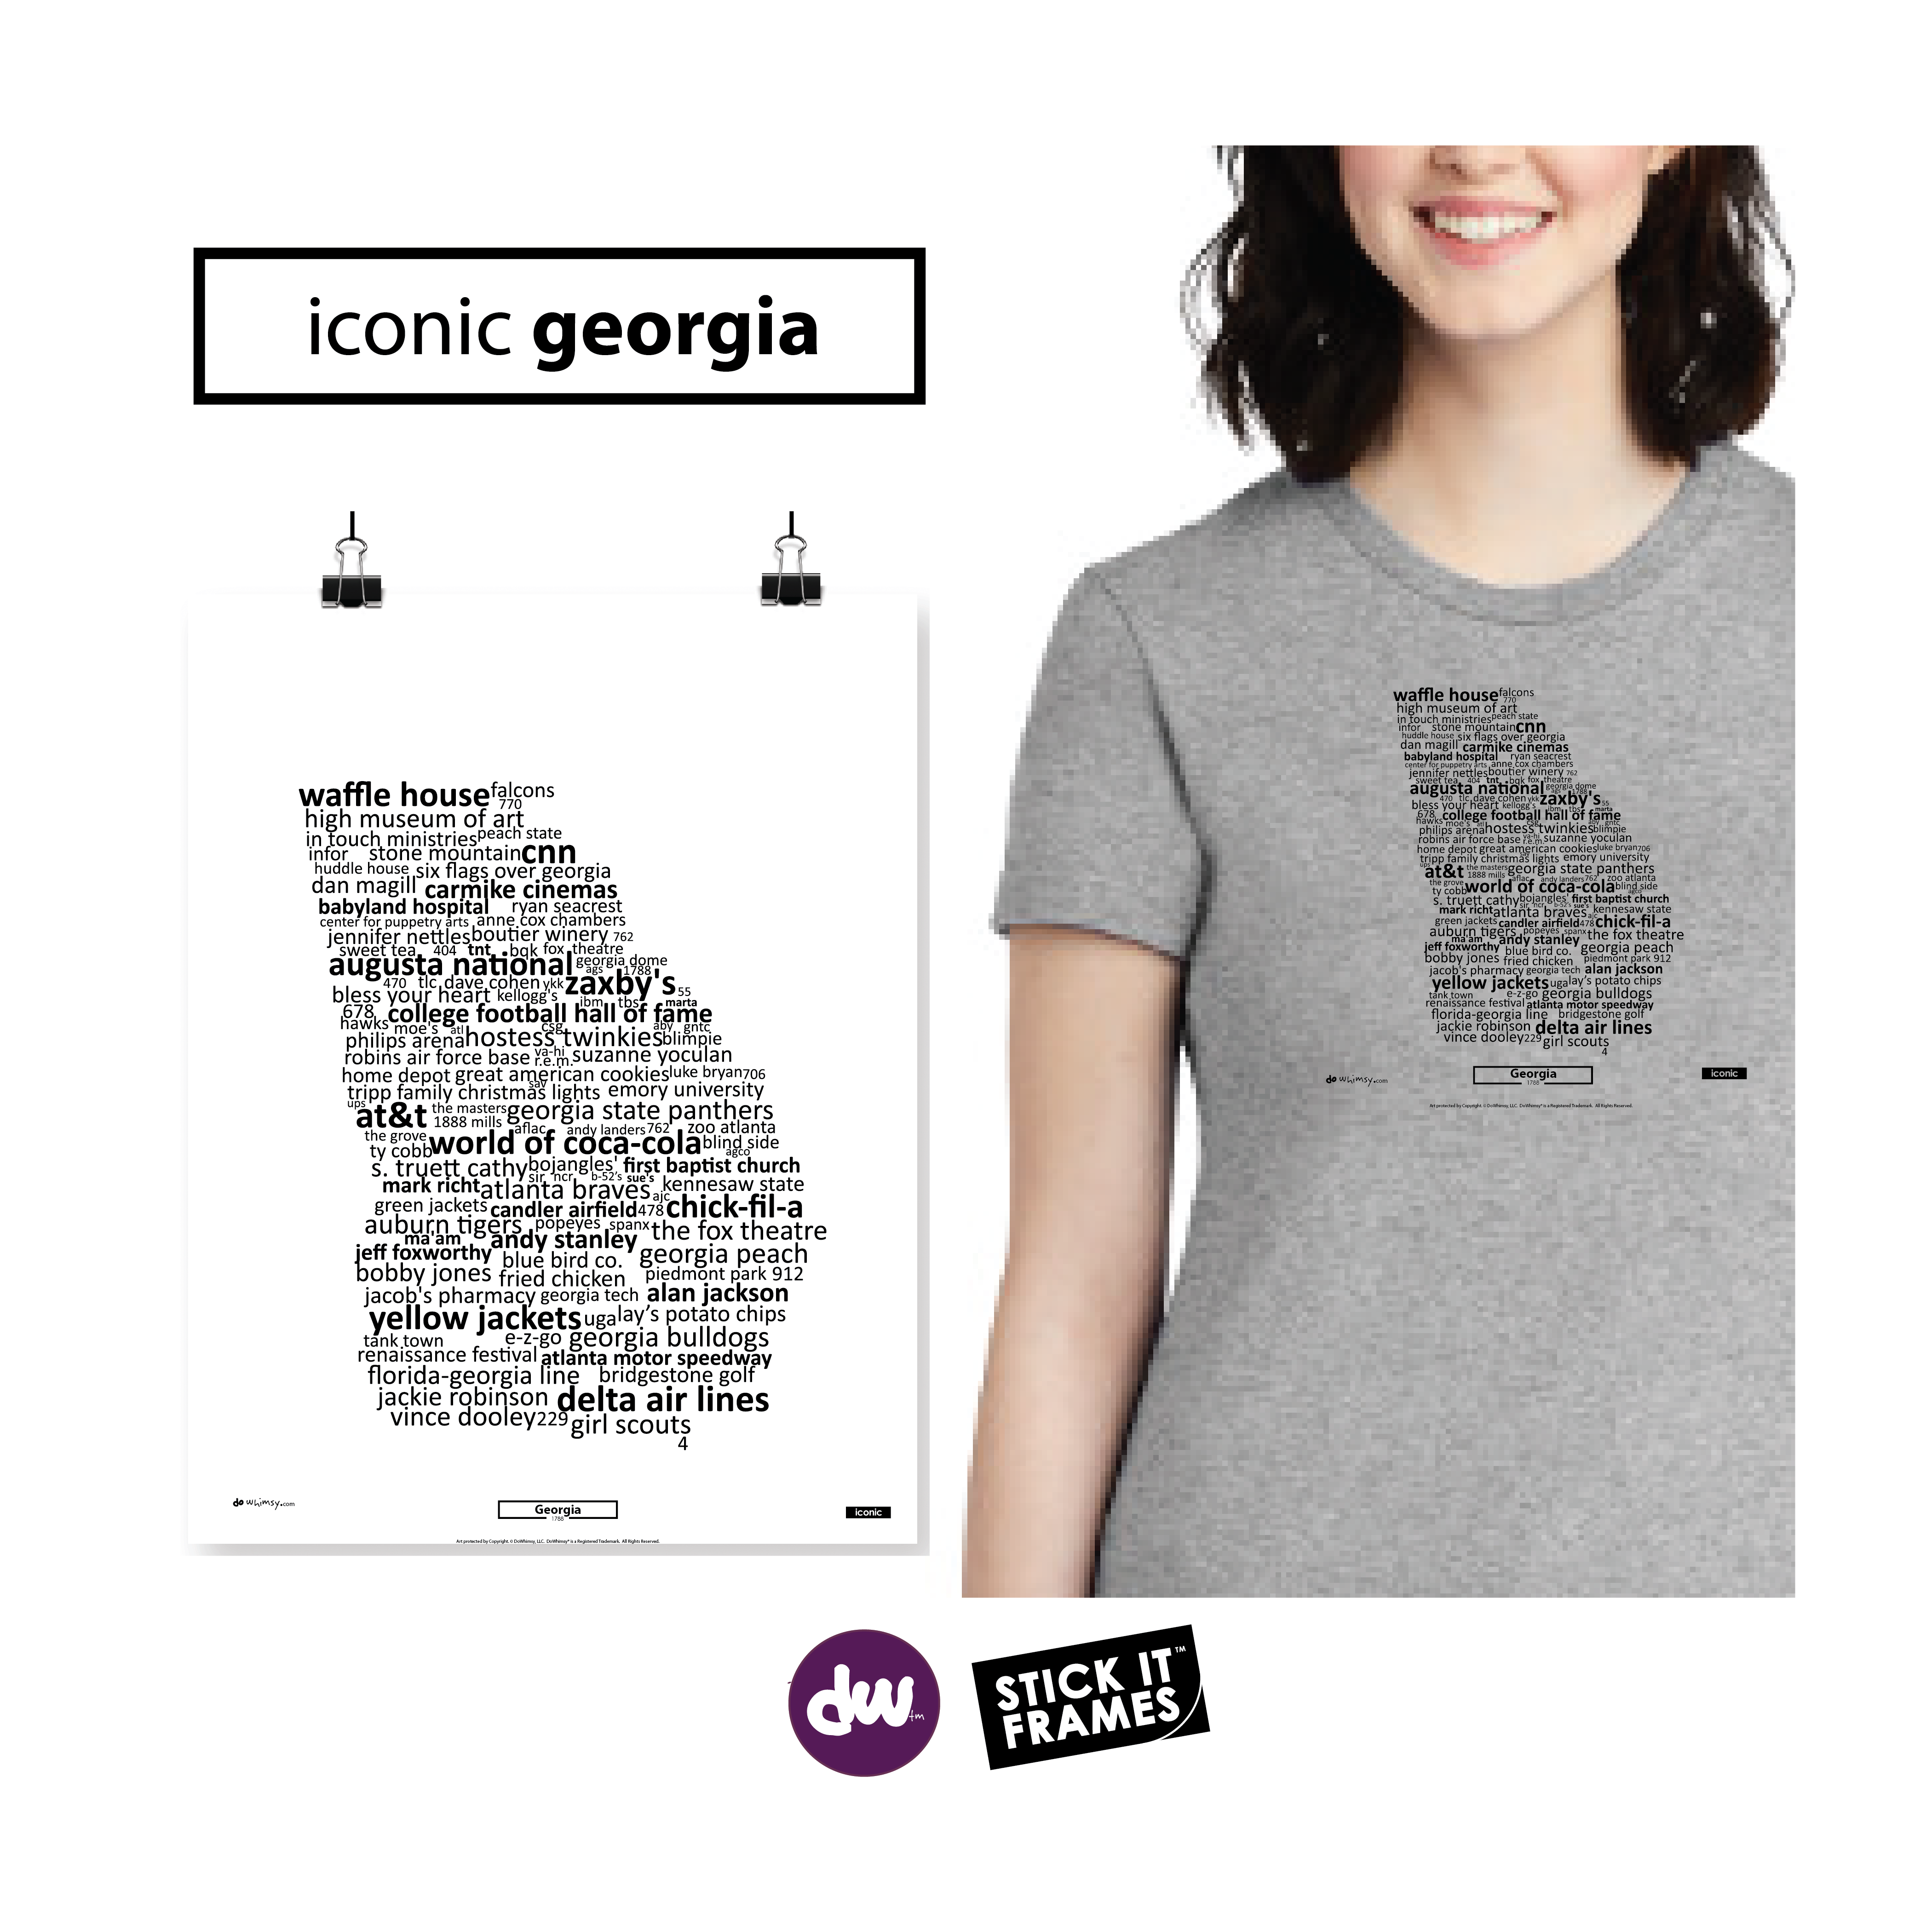 Iconic Georgia - All Products (Shirt, Art, Frames (R))